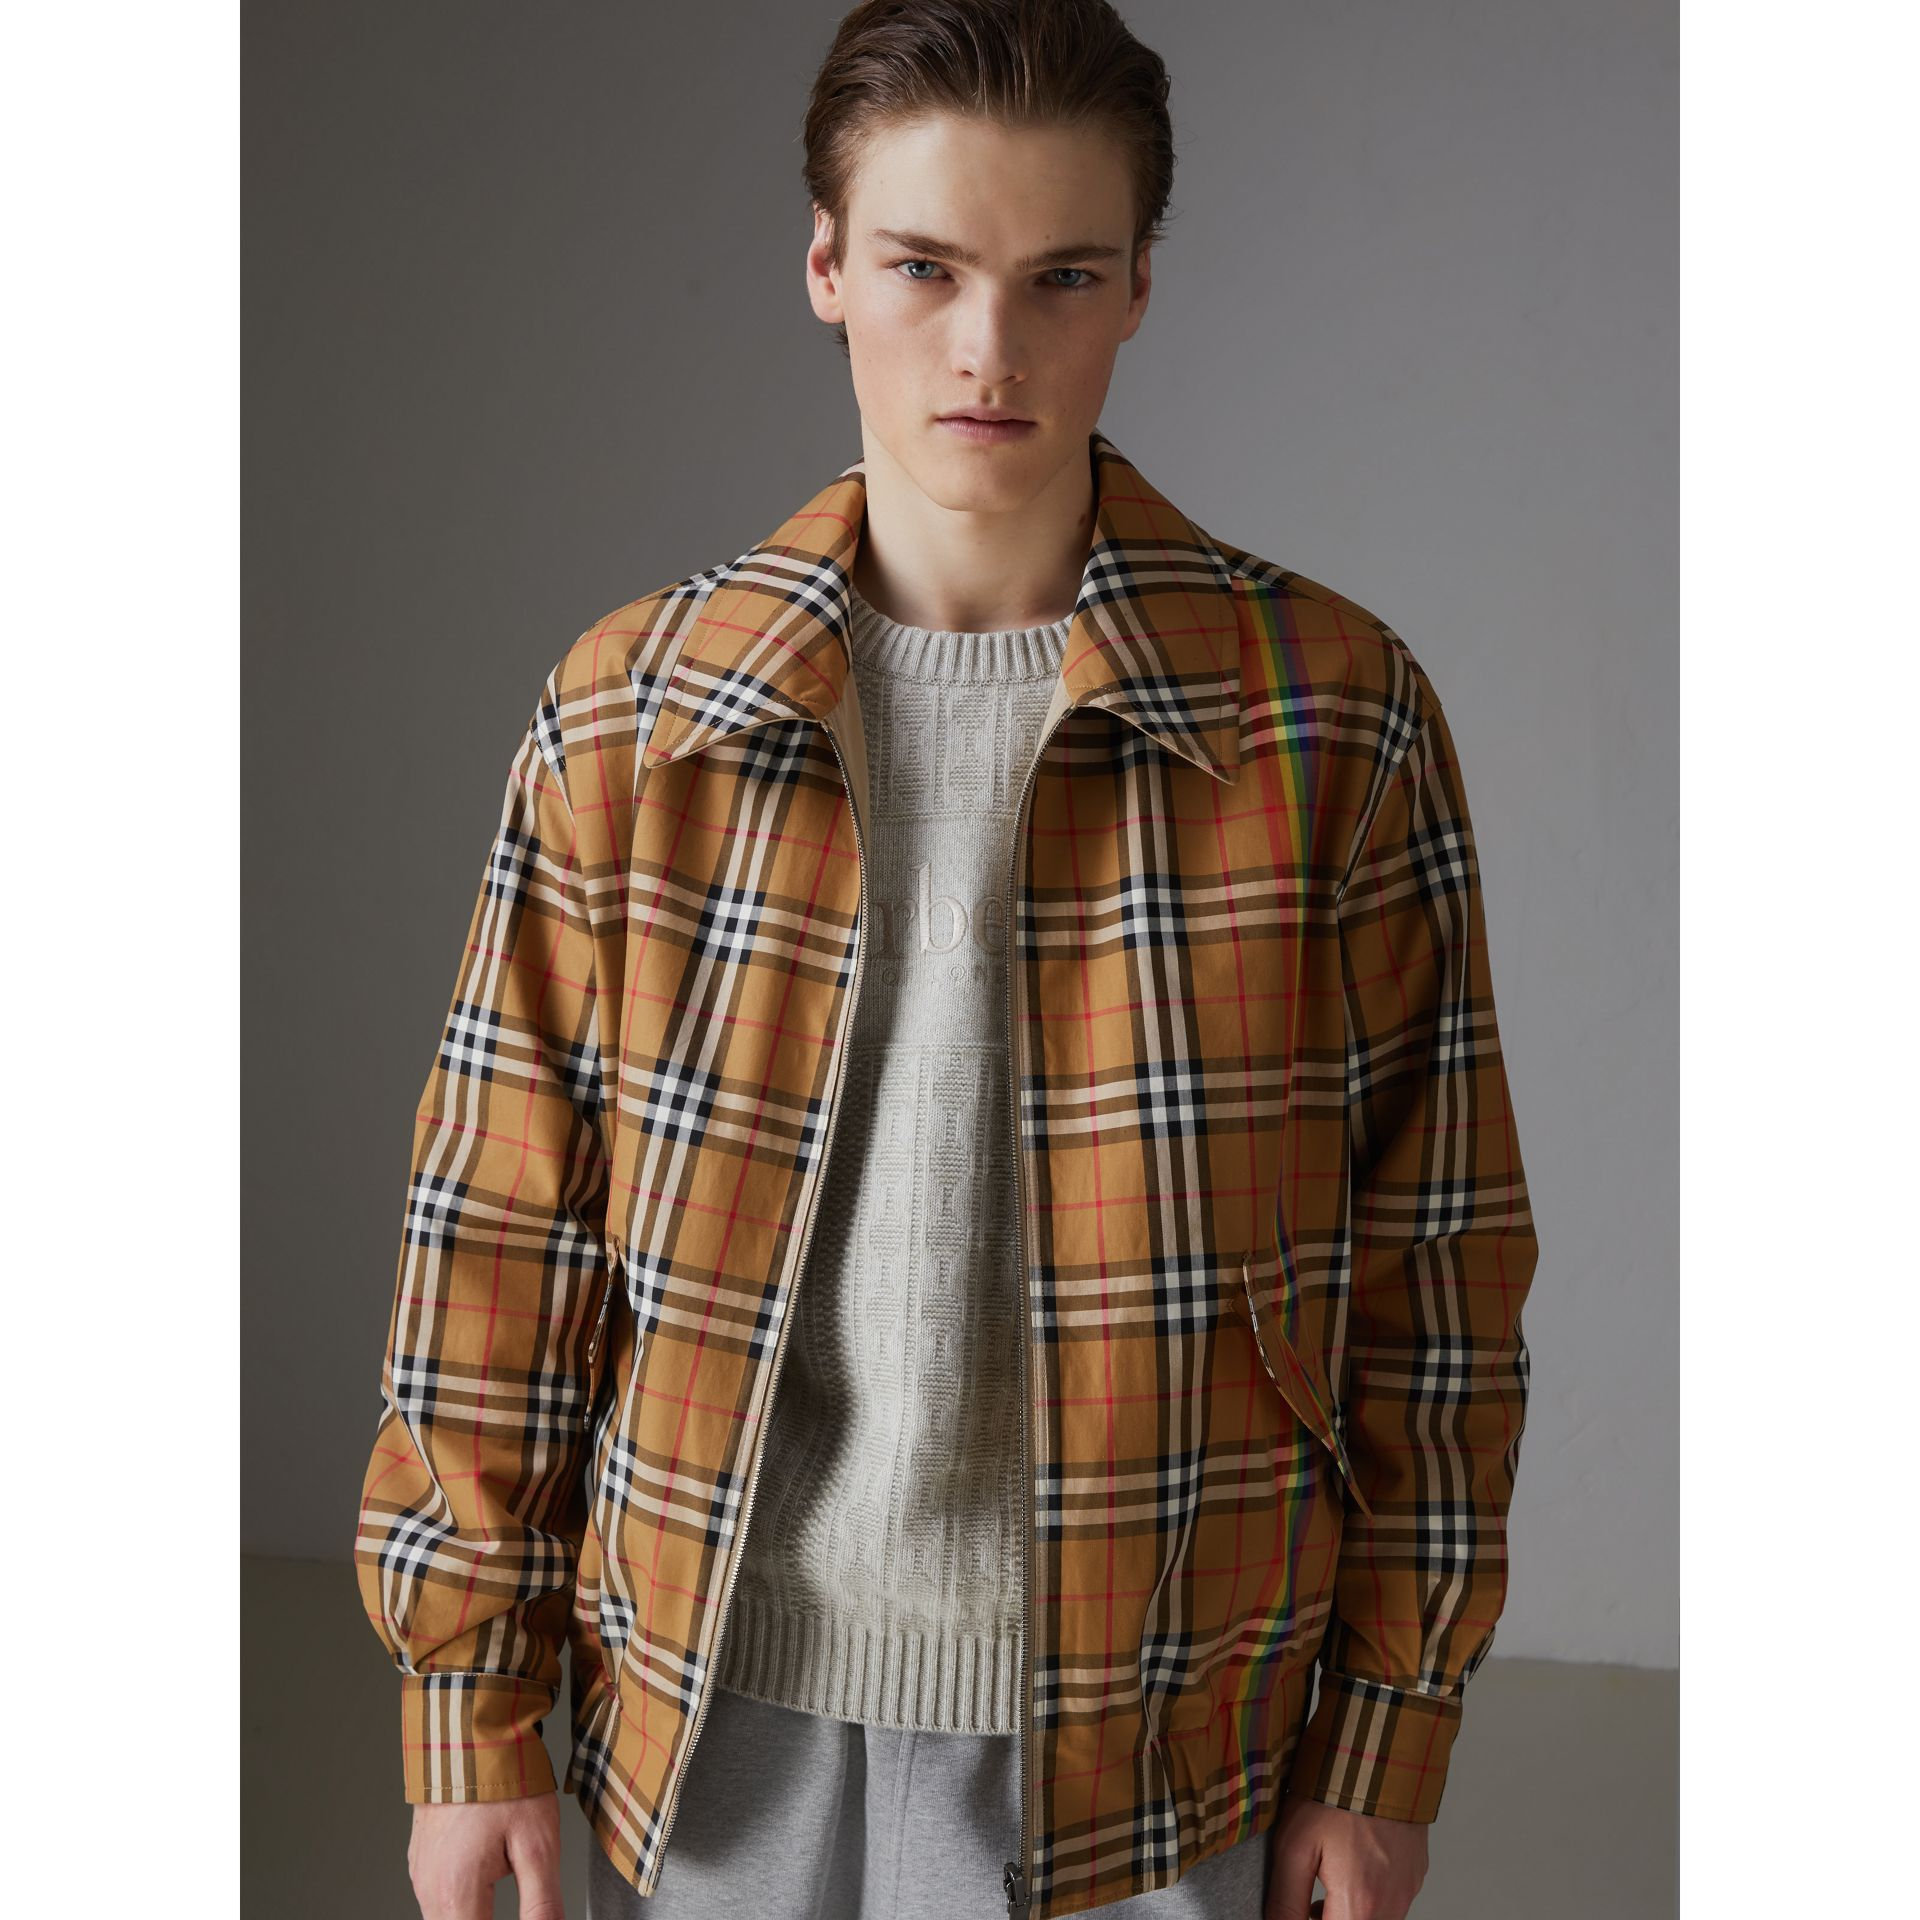 Veste Harrington à motif Rainbow Vintage check (Jaune Antique/arc-en-ciel) - Homme | Burberry - photo de la galerie 7